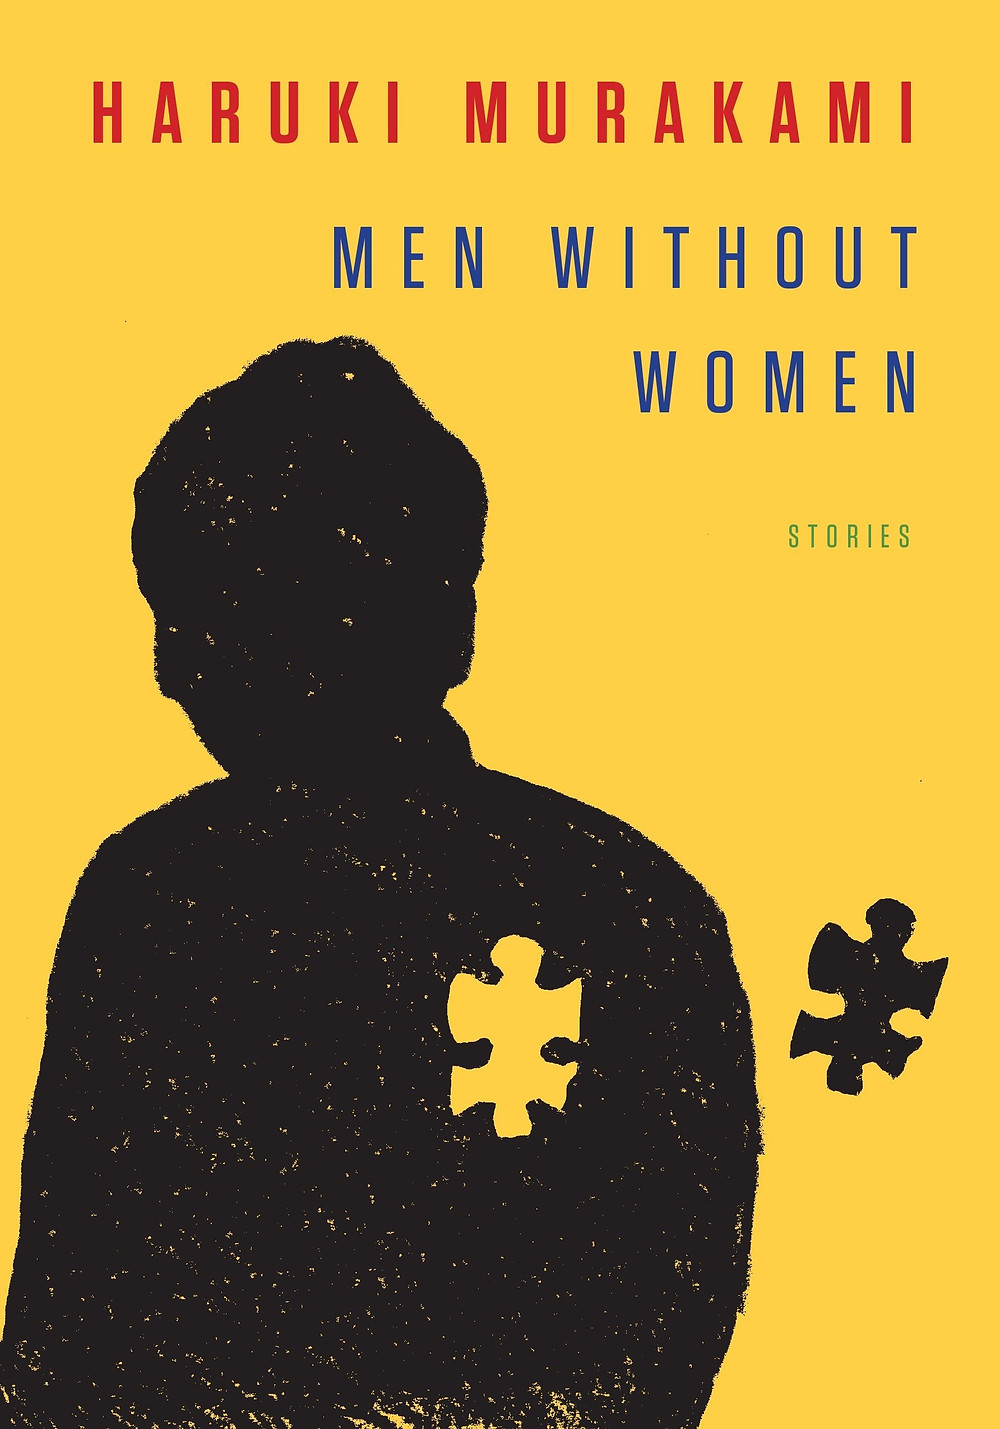 The cover of Haruki Murakami's short story collection, Men With